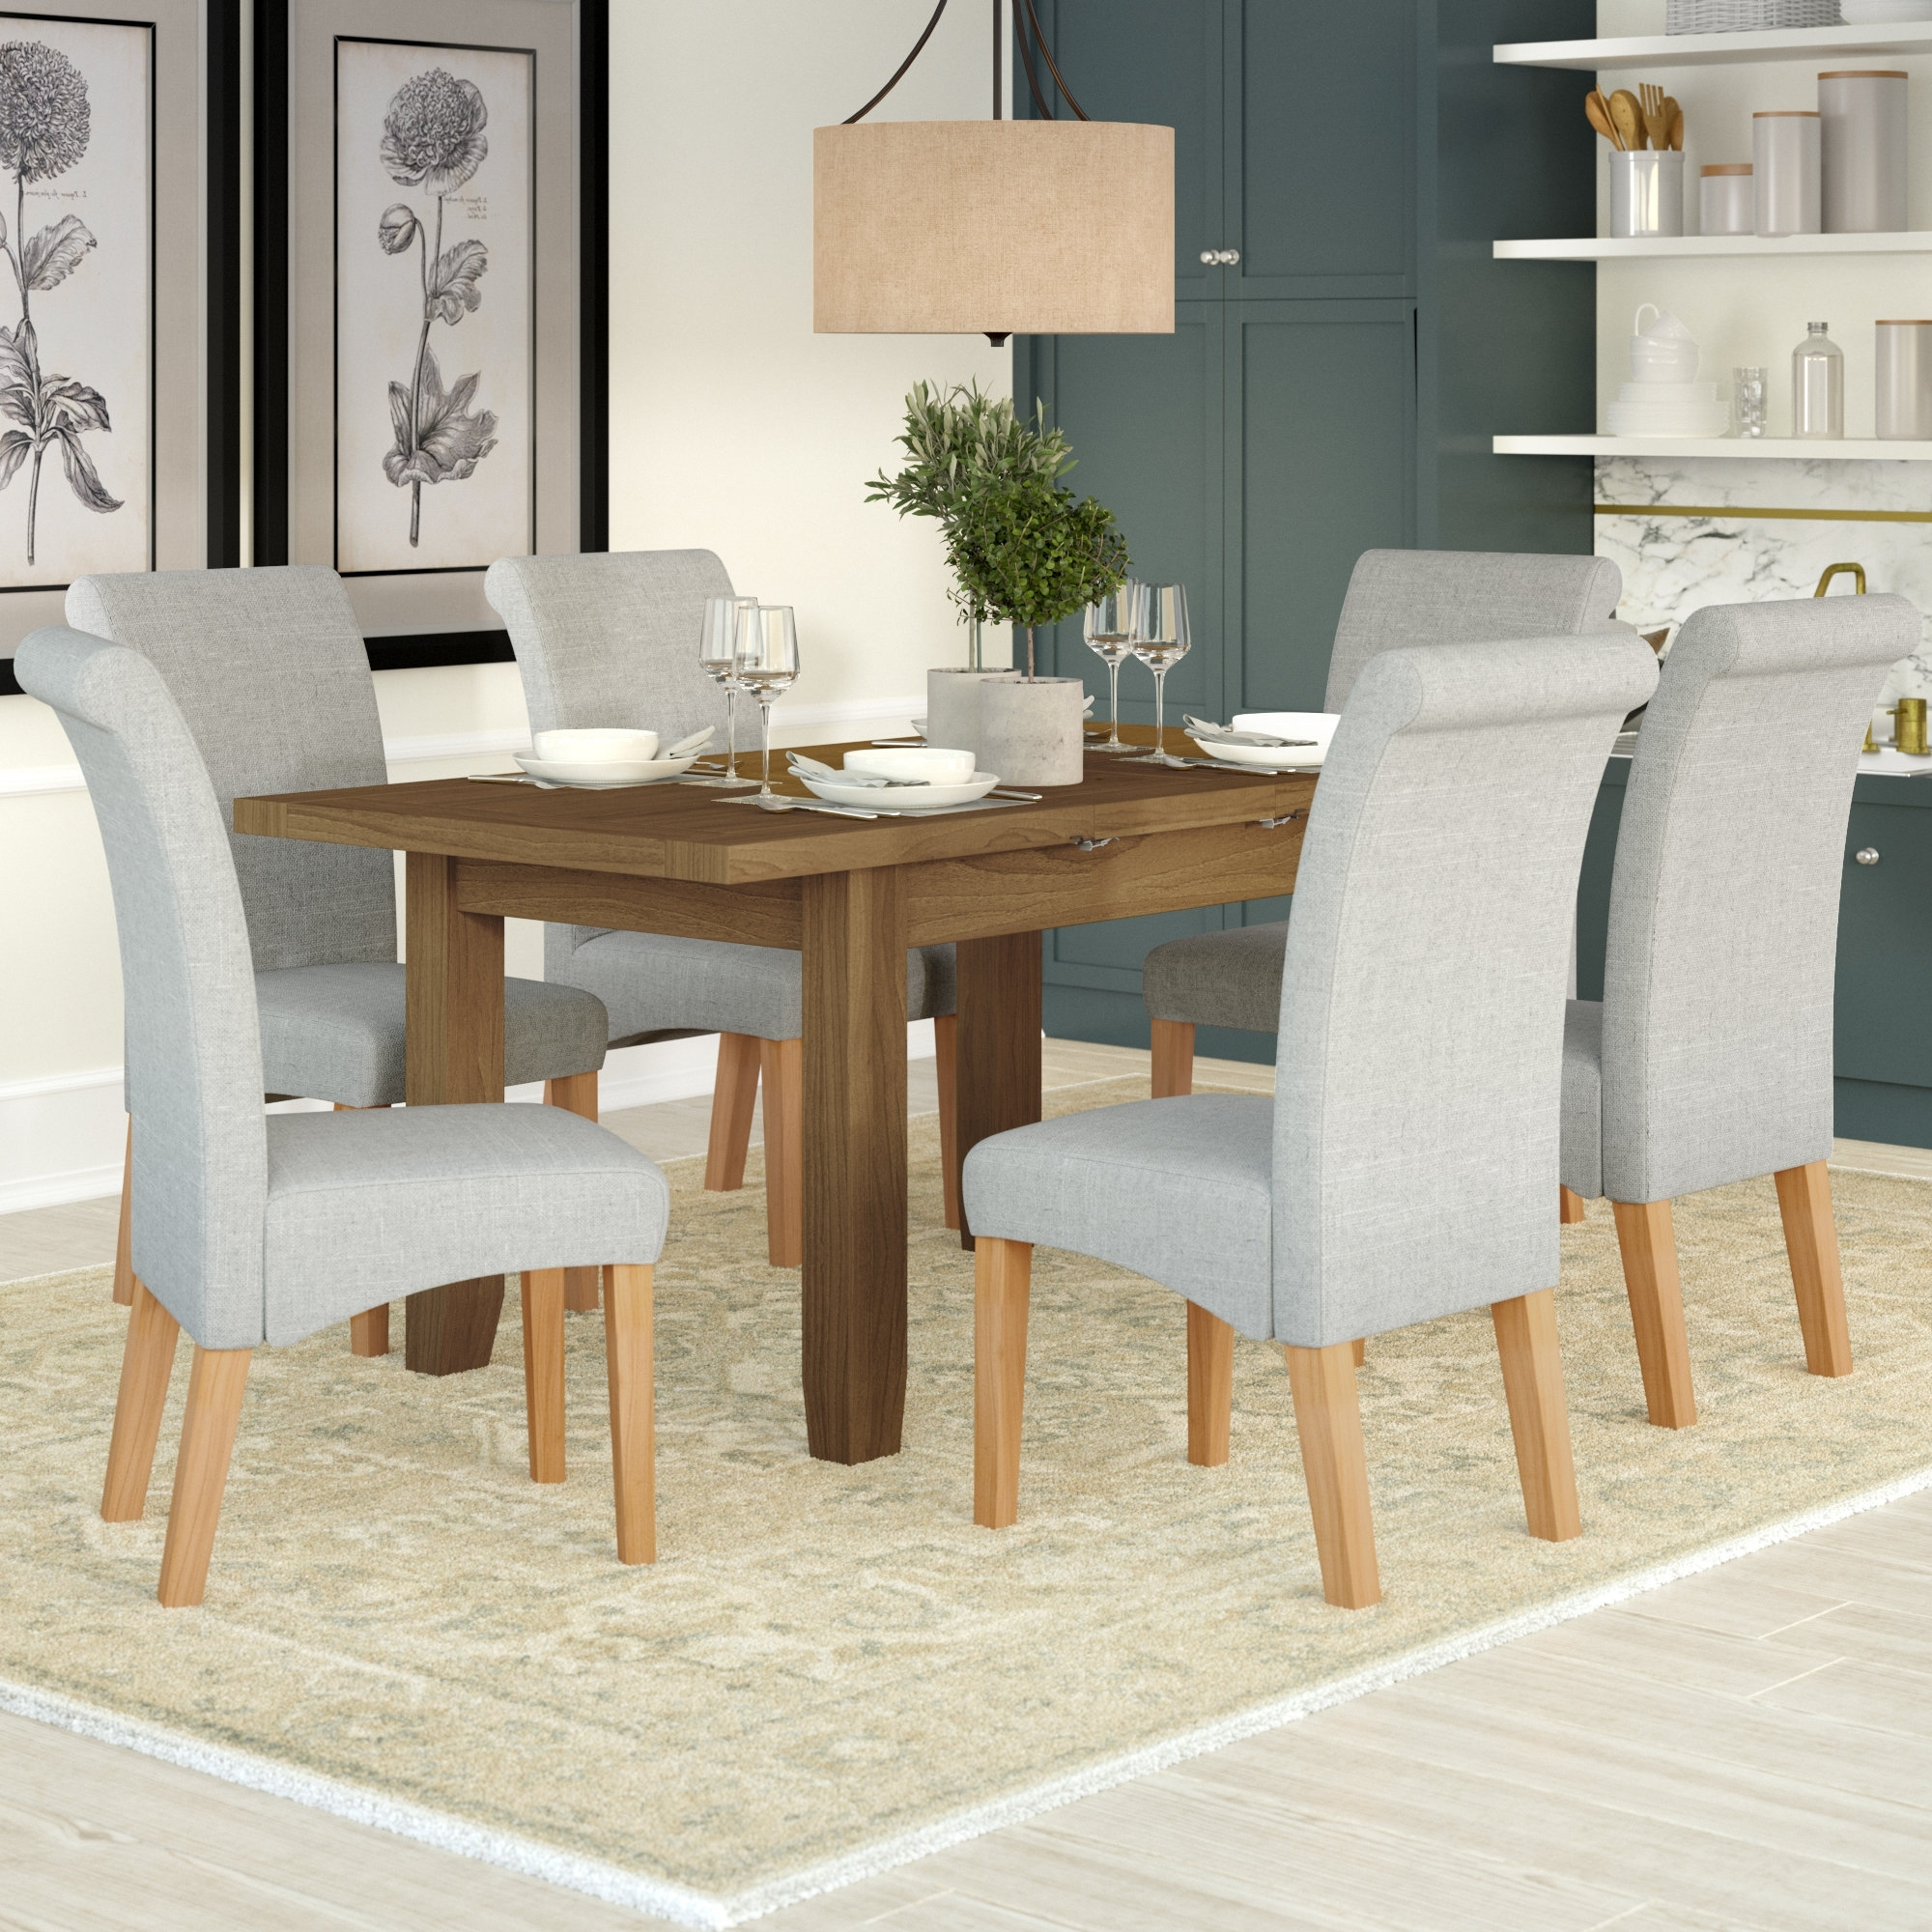 6 Chairs And Dining Tables In Well Known Three Posts Berwick Extendable Dining Table And 6 Chairs & Reviews (View 20 of 25)